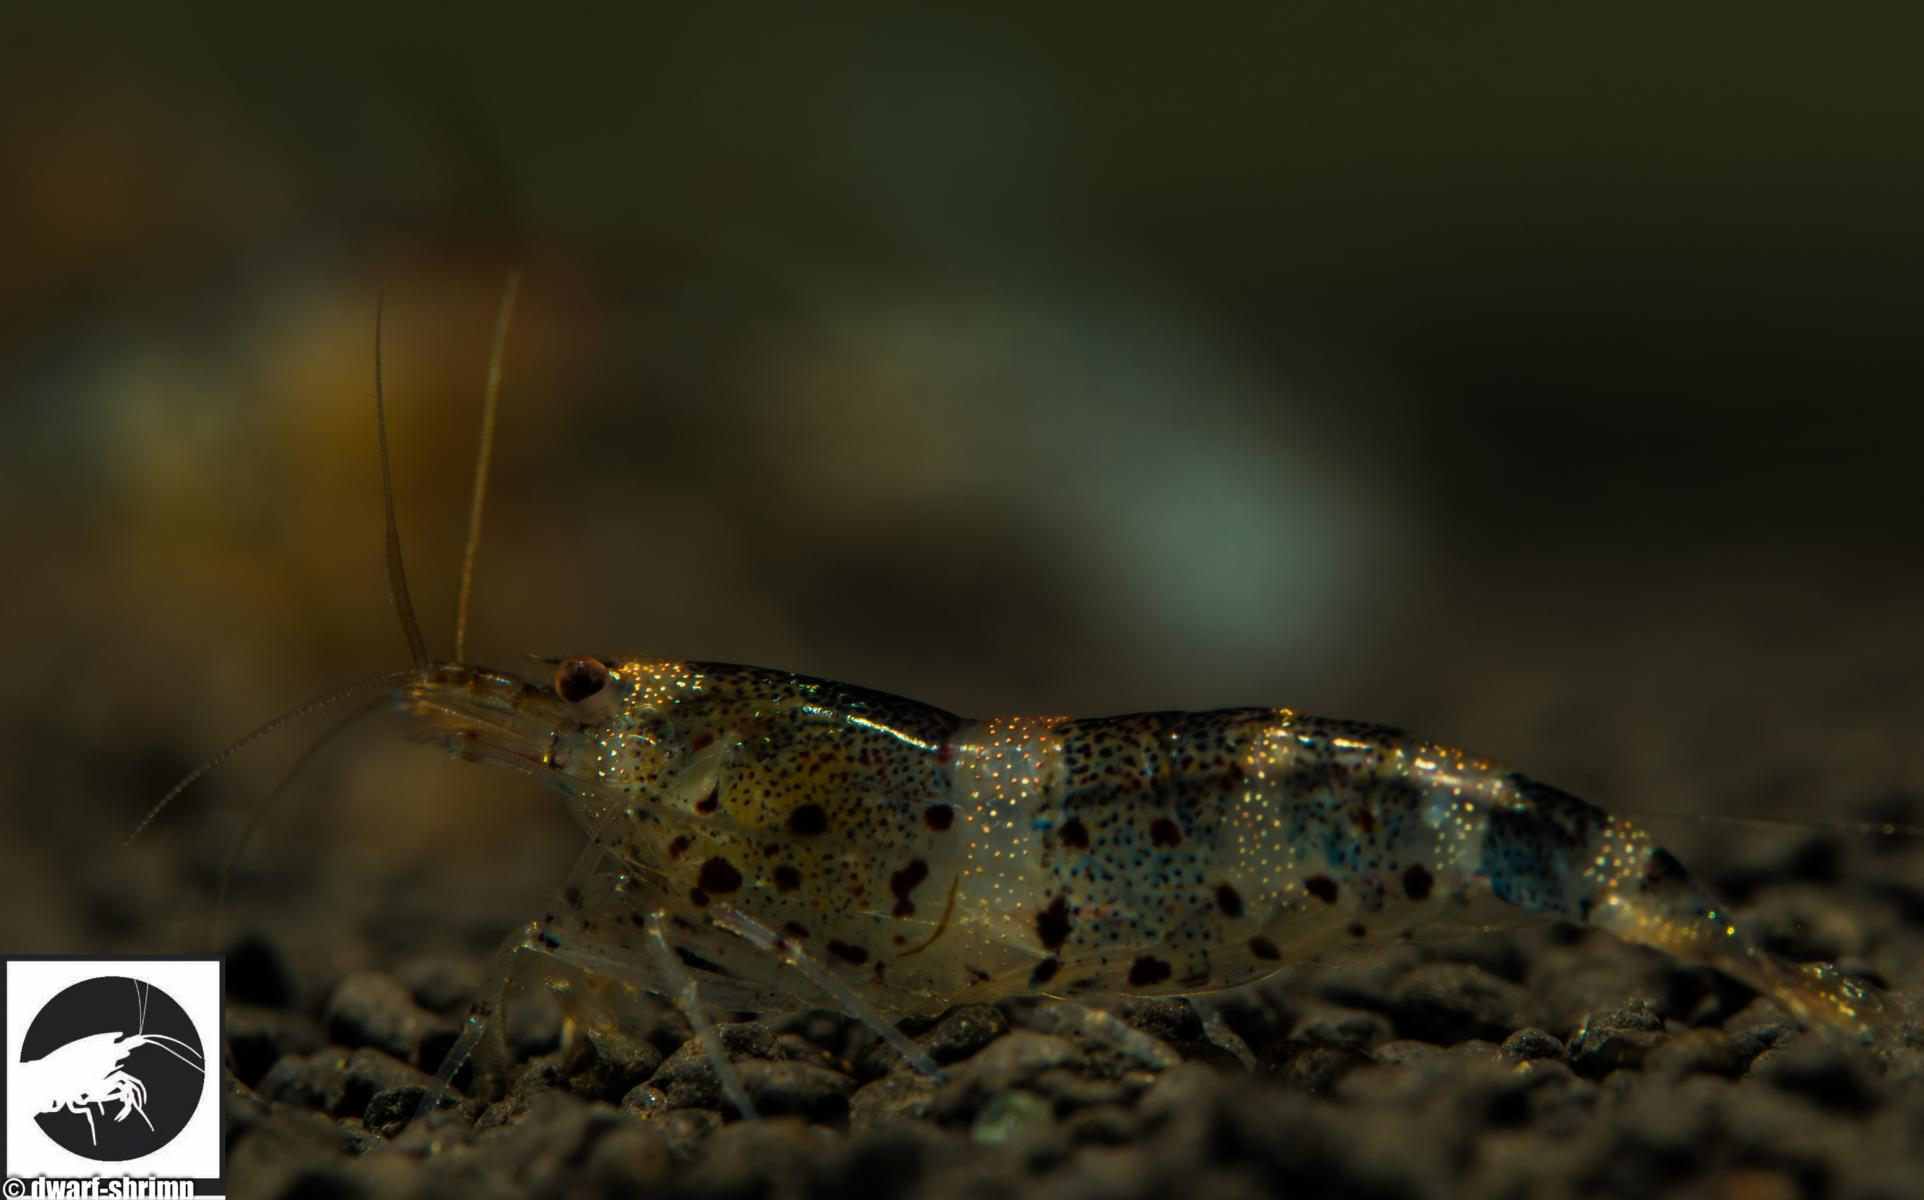 Dwarf-Shrimp-Zwerggarnelen-Caridina-sp-china-princess-Bild6